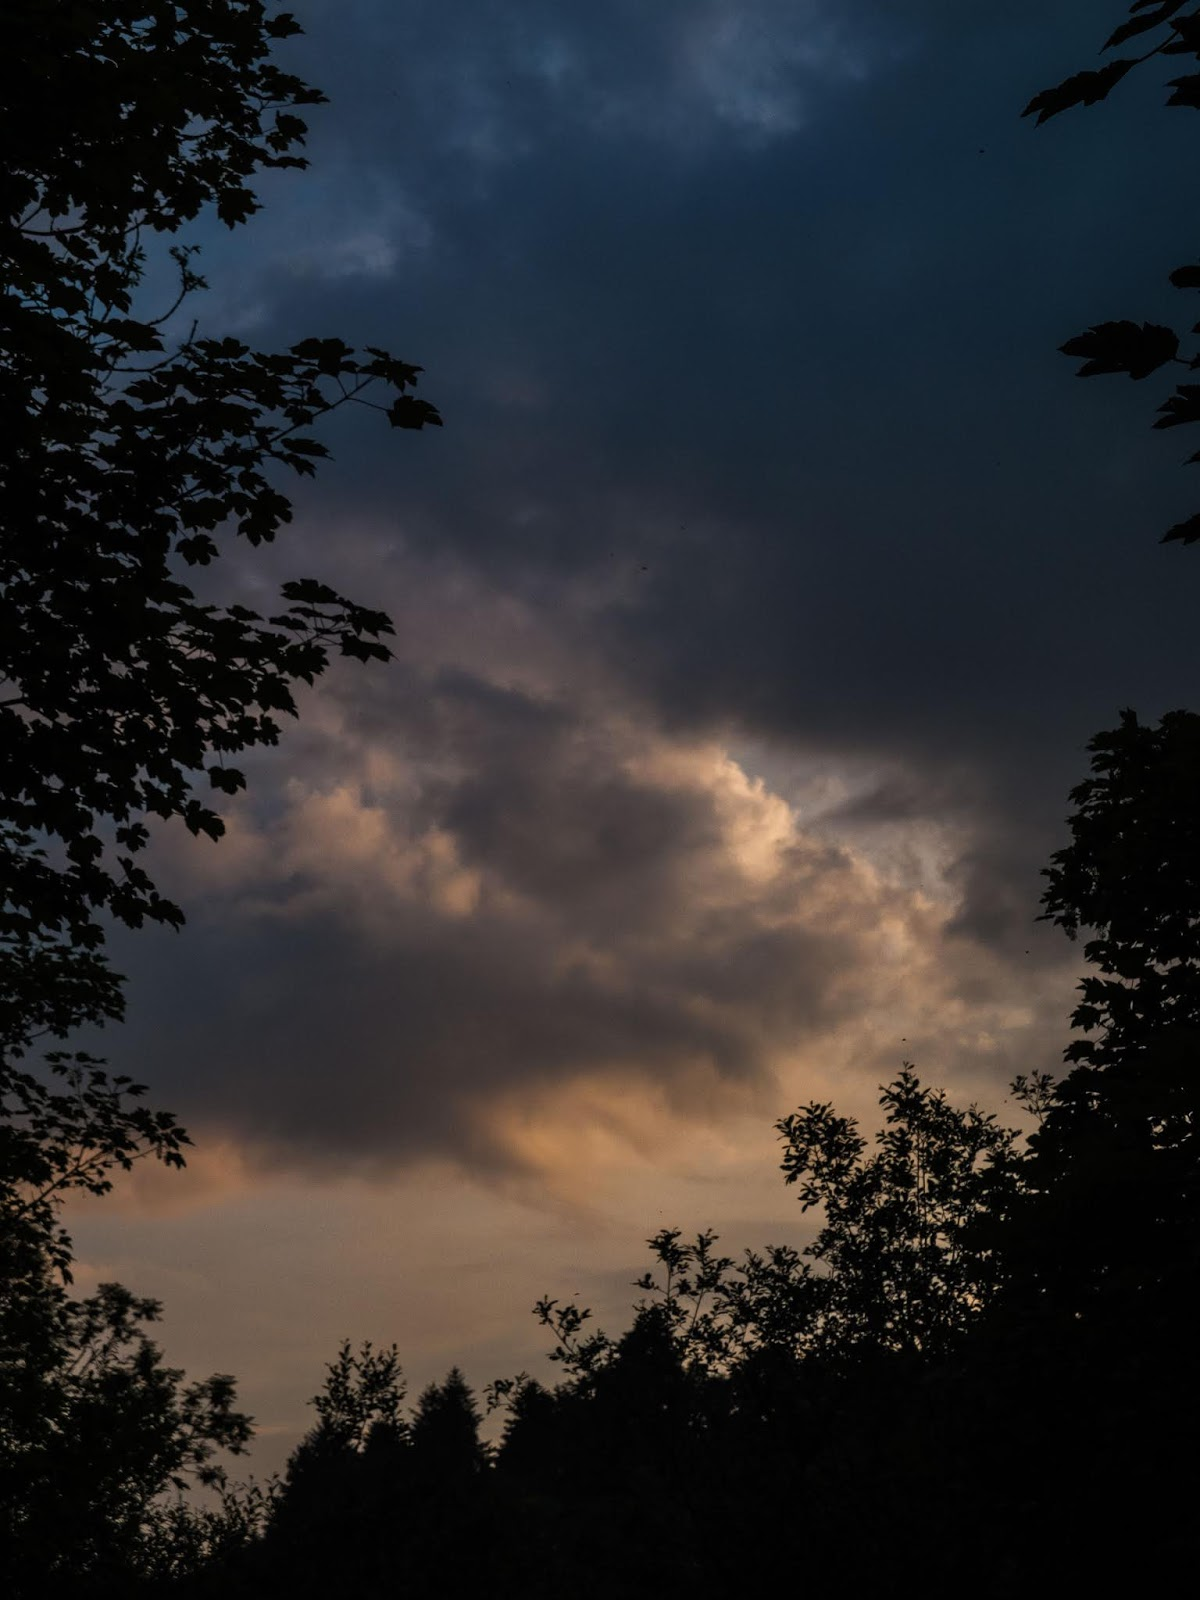 A sunset cloud captured between a mixture of different trees.